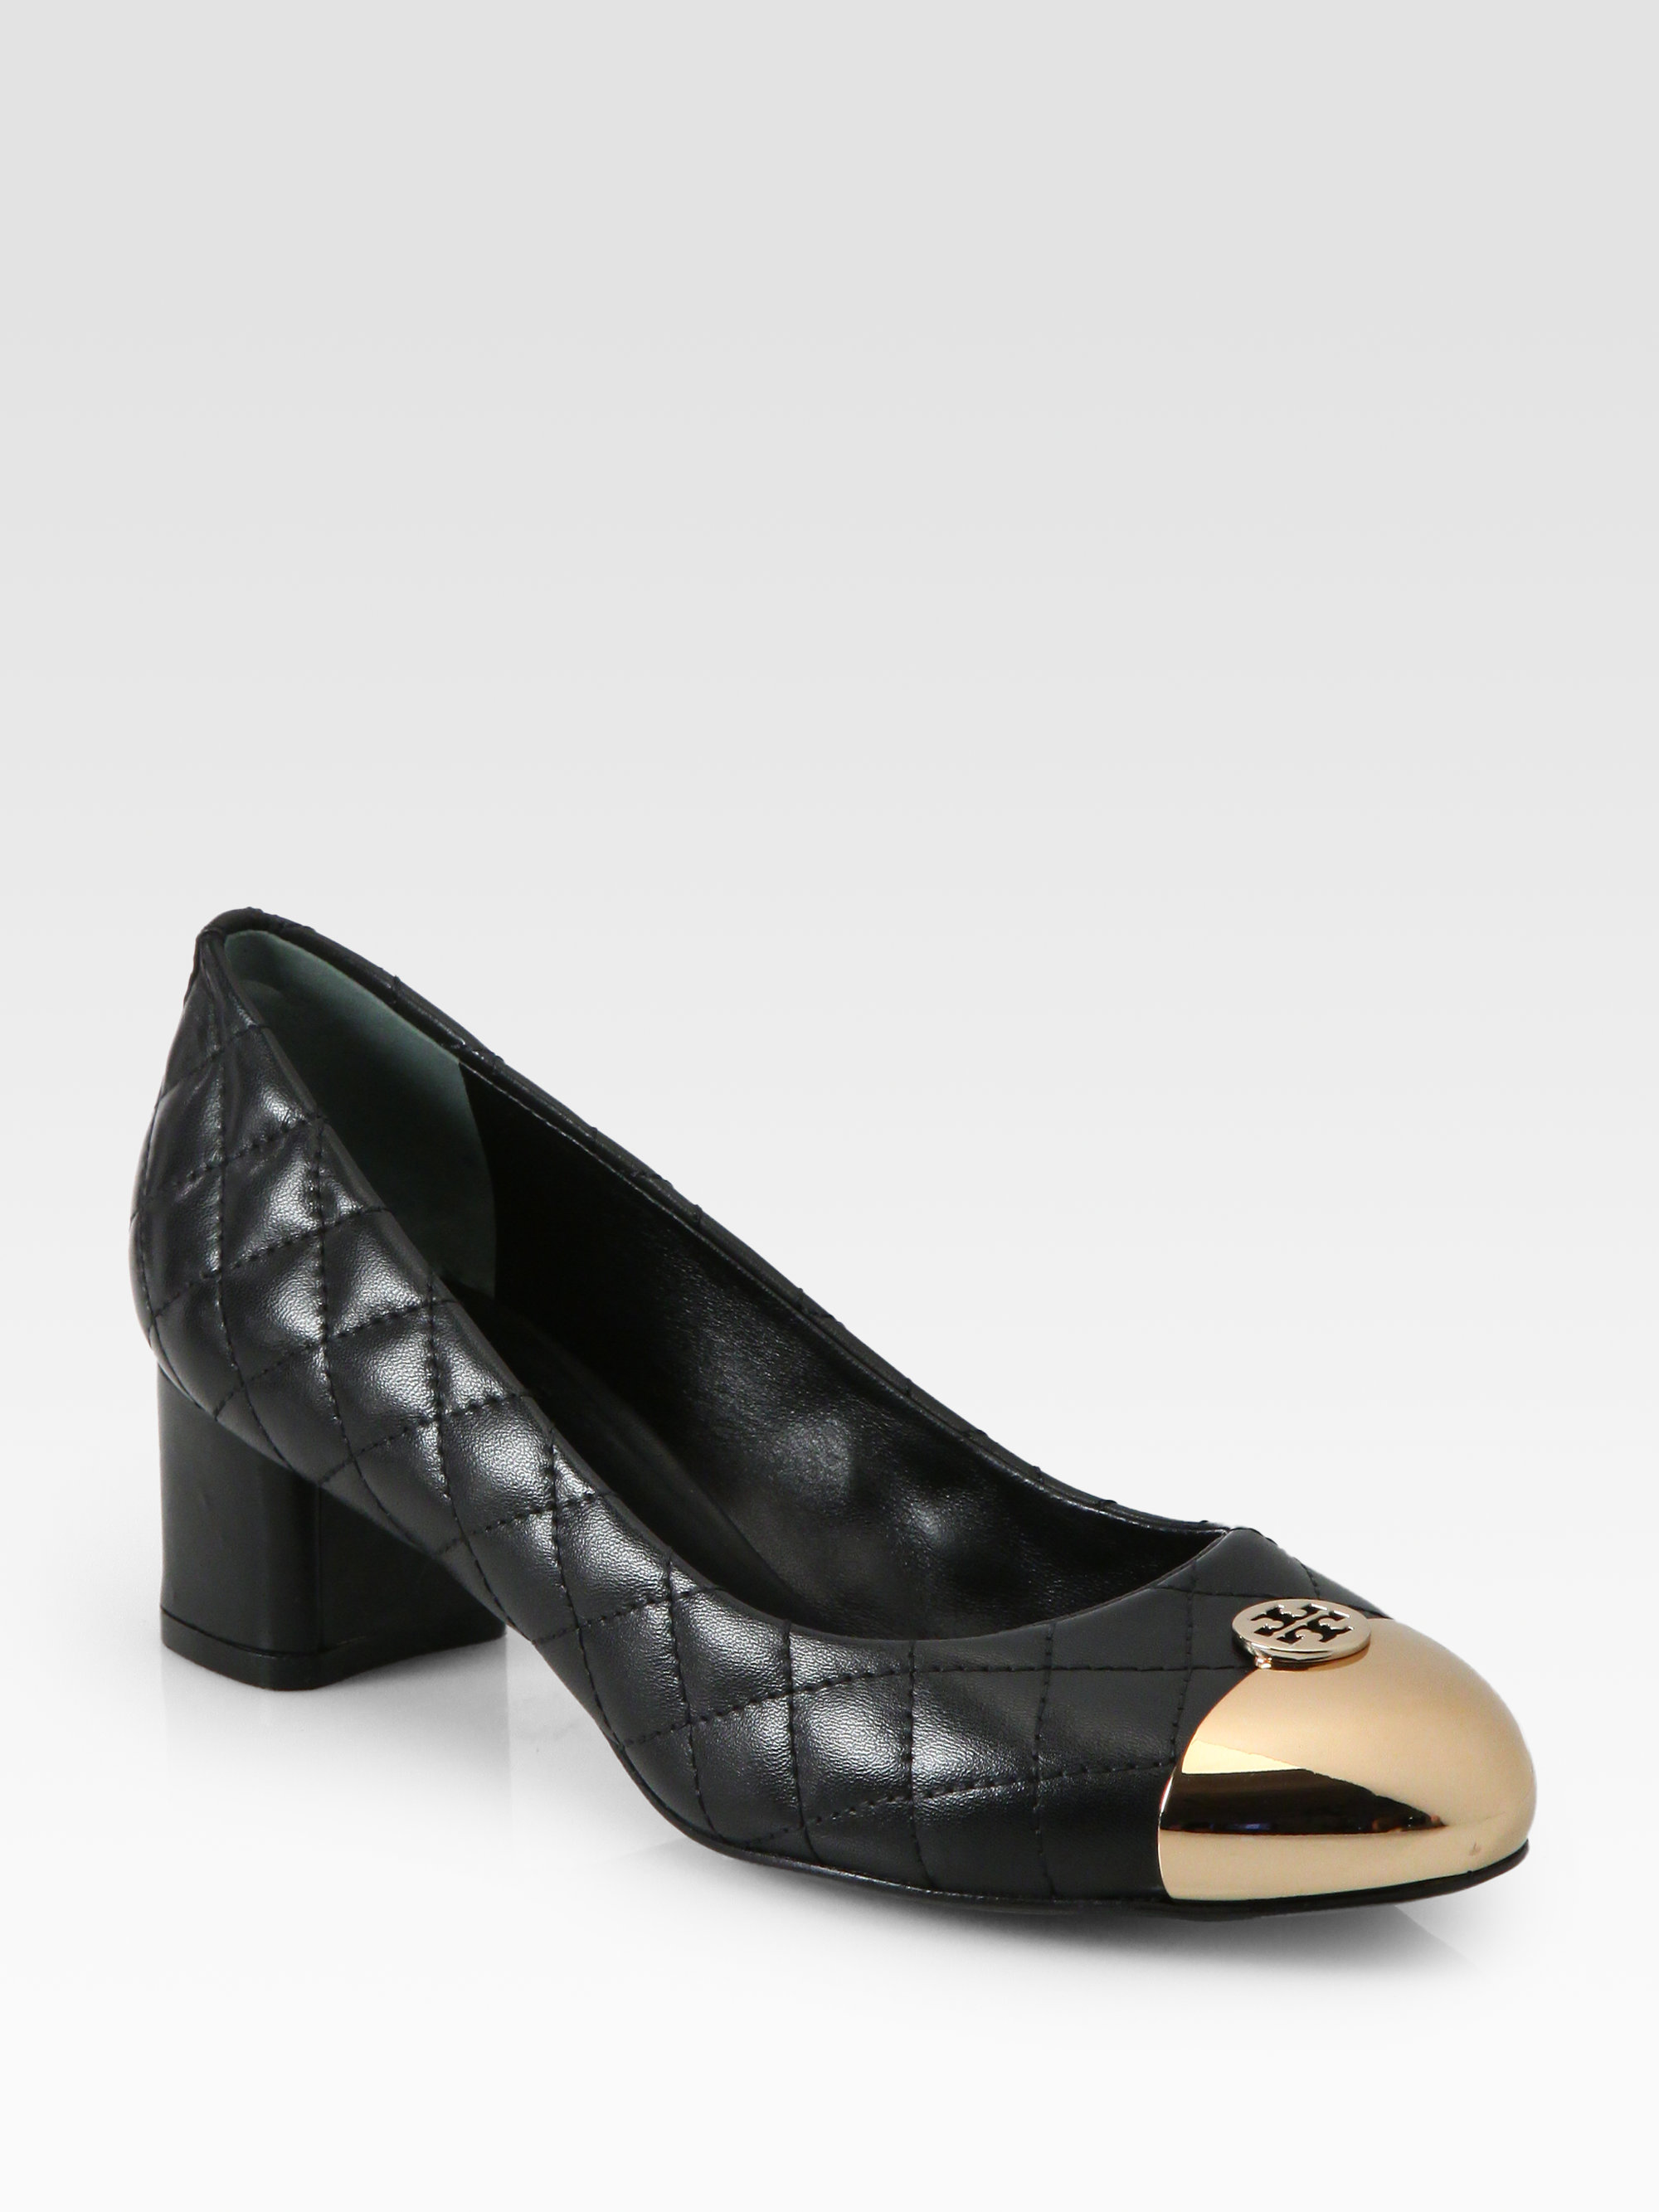 Tory Burch Quilted Leather Pumps cheap 2014 newest zzWzW4Jqyr